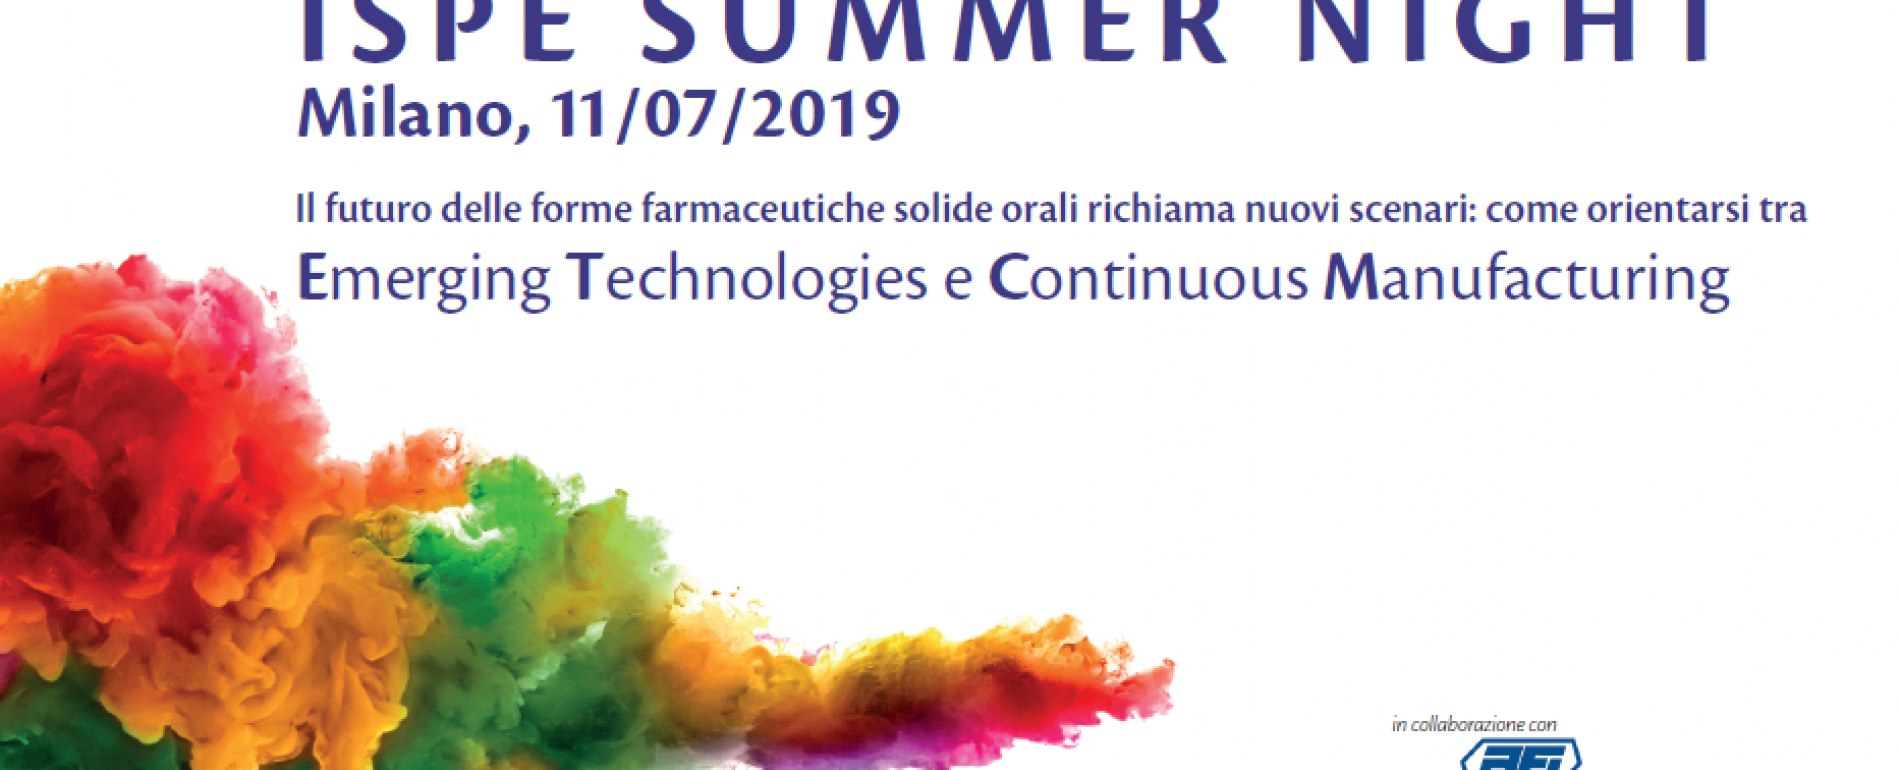 ISPE Summer Night 2019